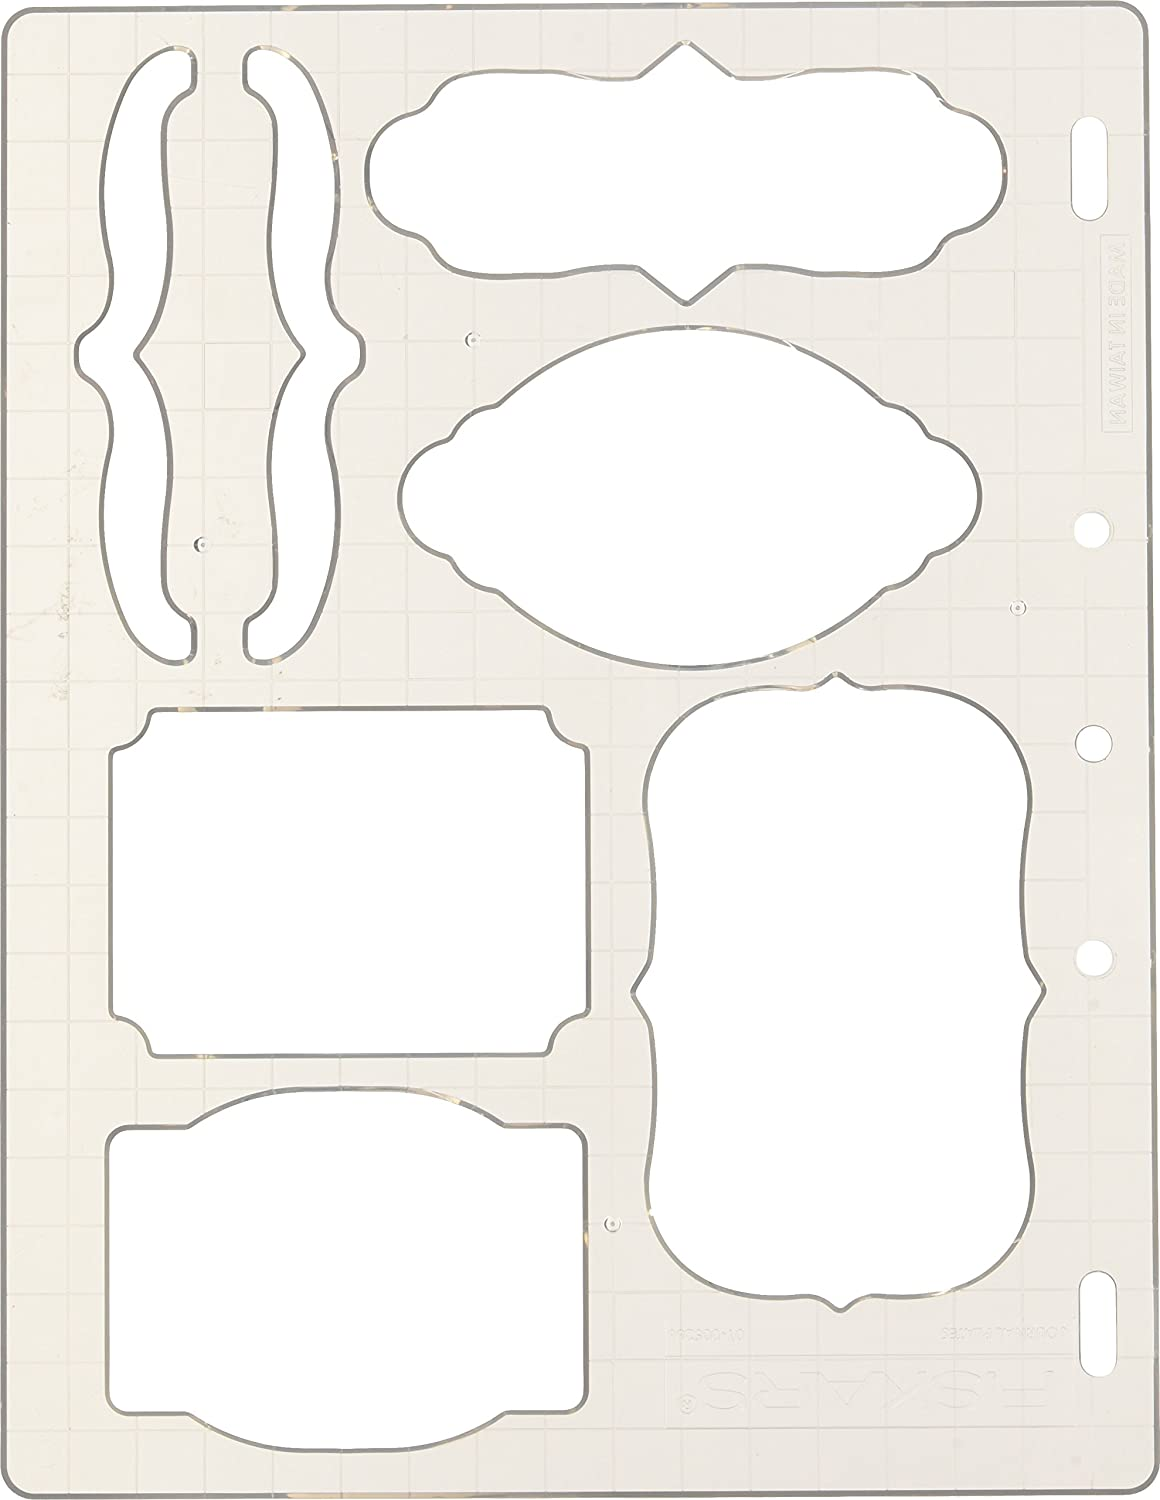 Fiskars 01-005266 Bracket and Journal Shape Template 01-005266F